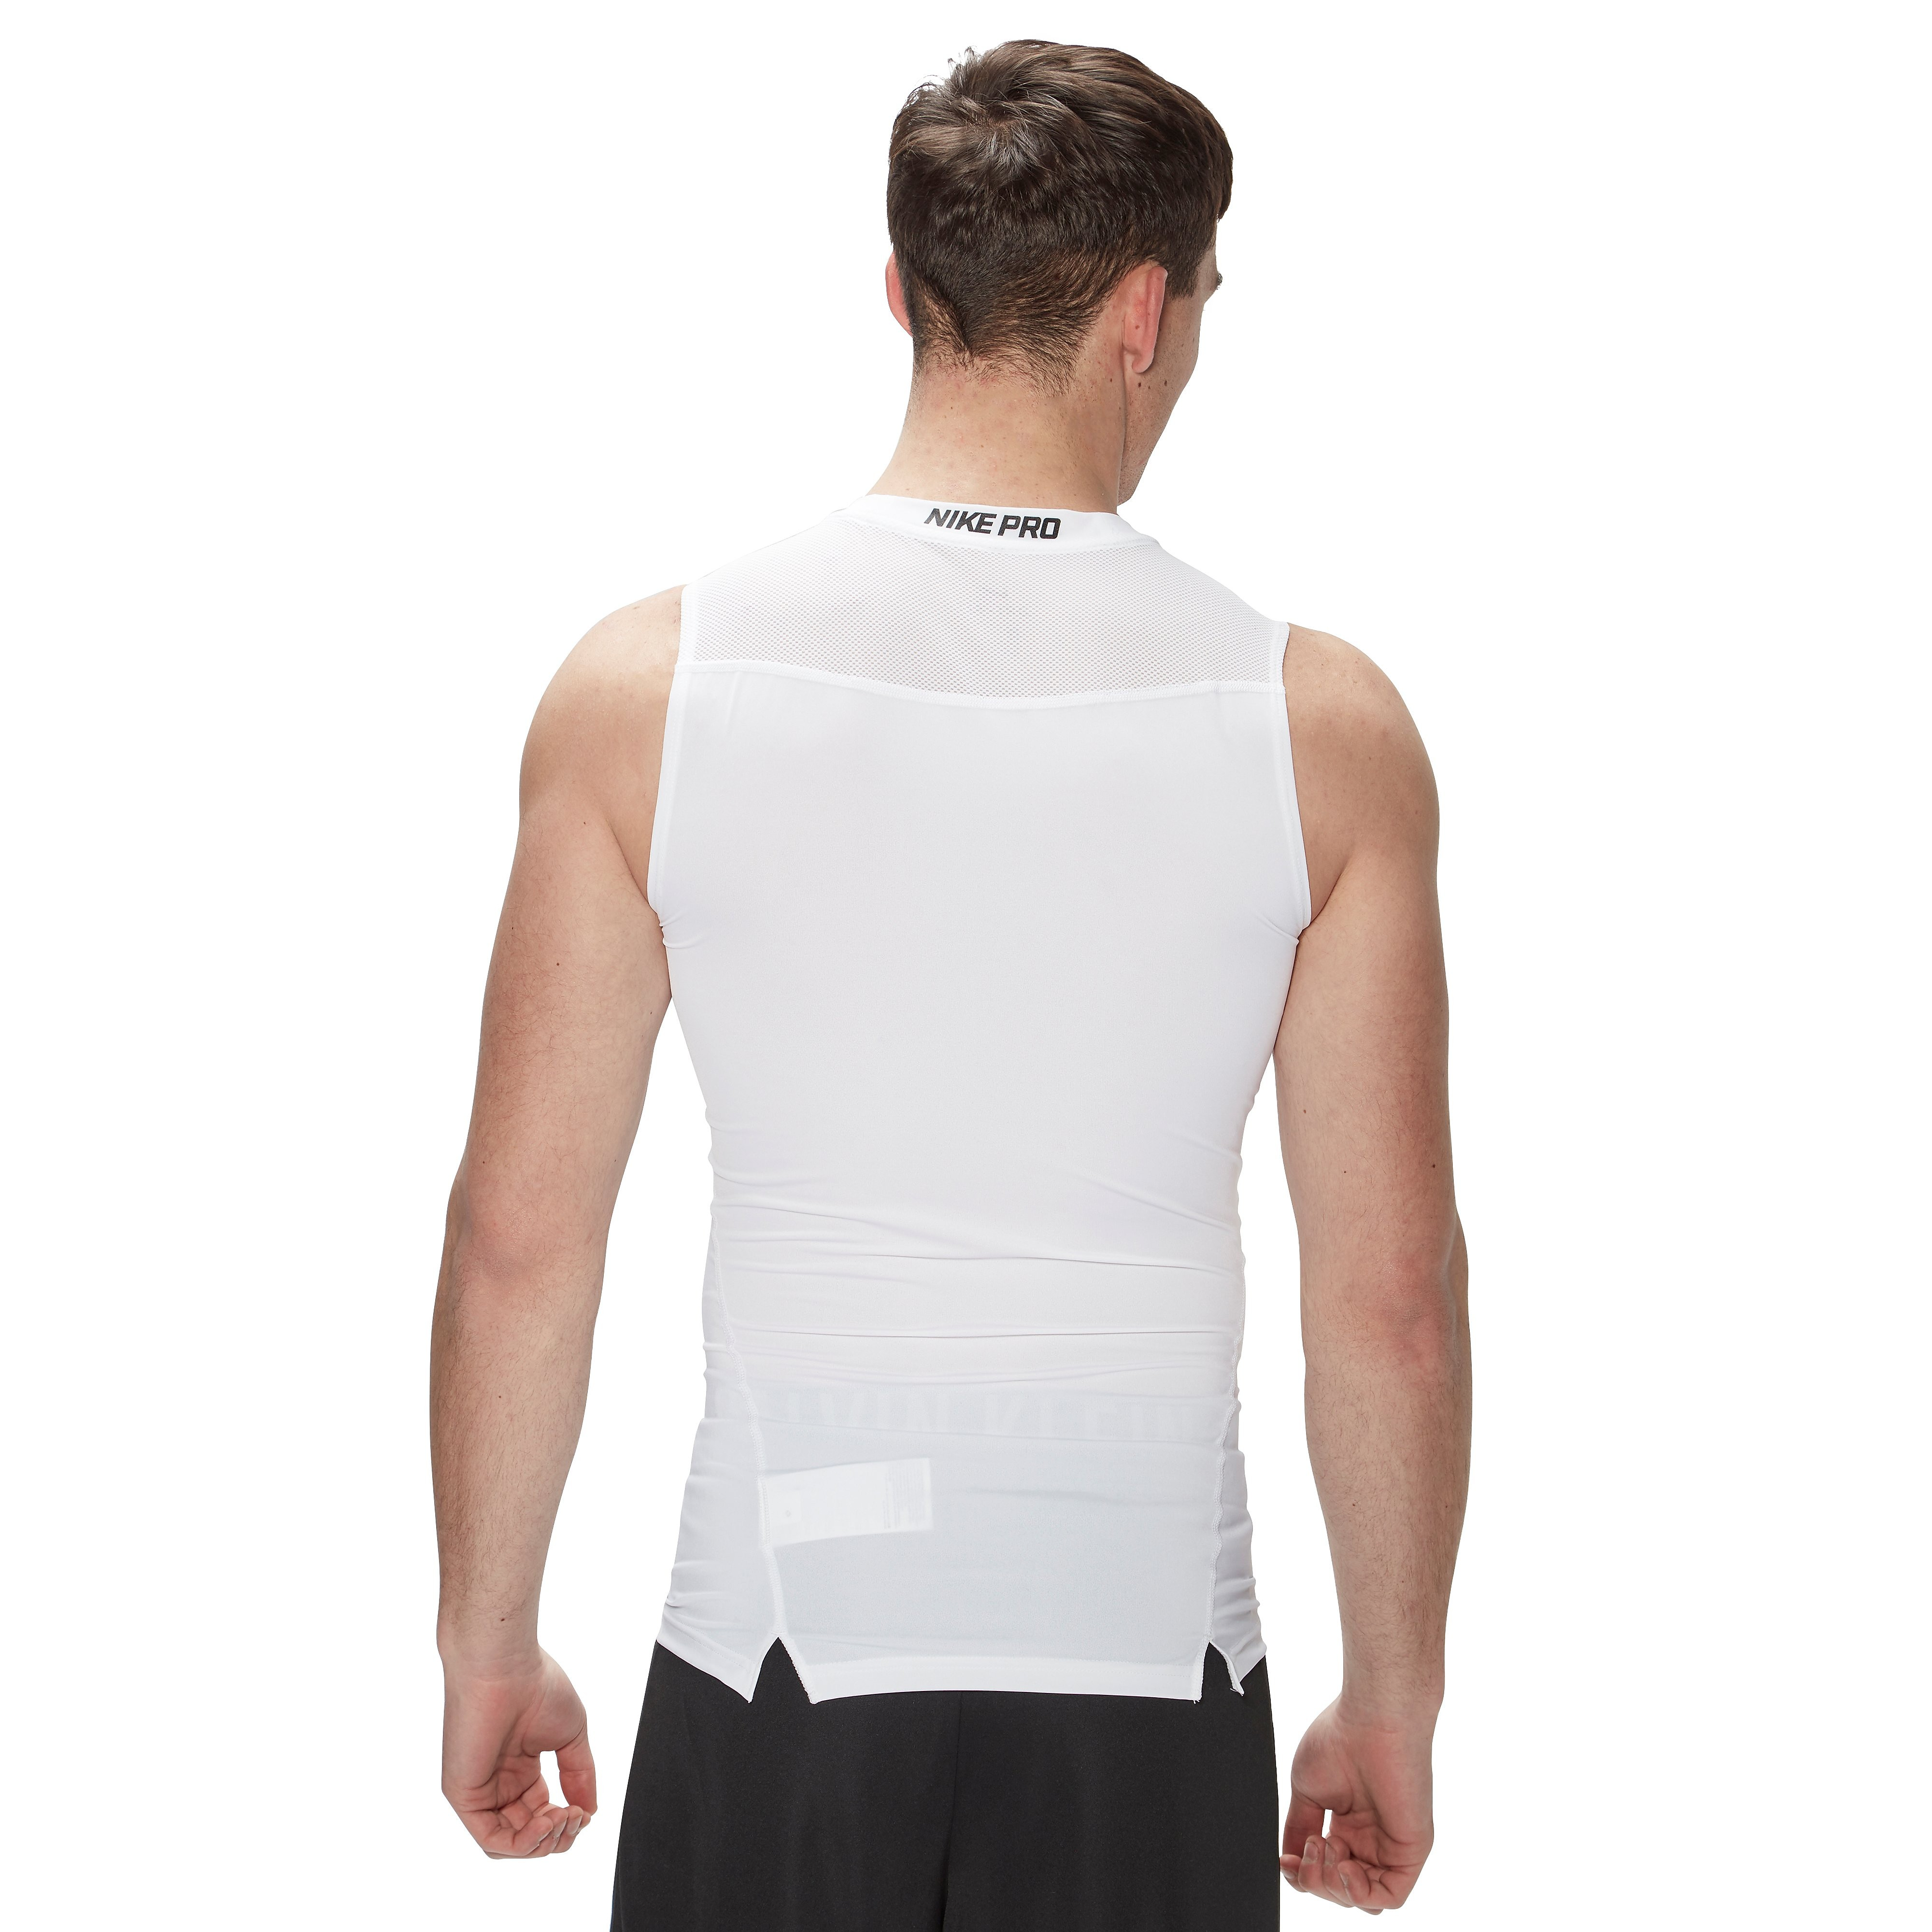 Nike Pro Compression Men's Tank Top